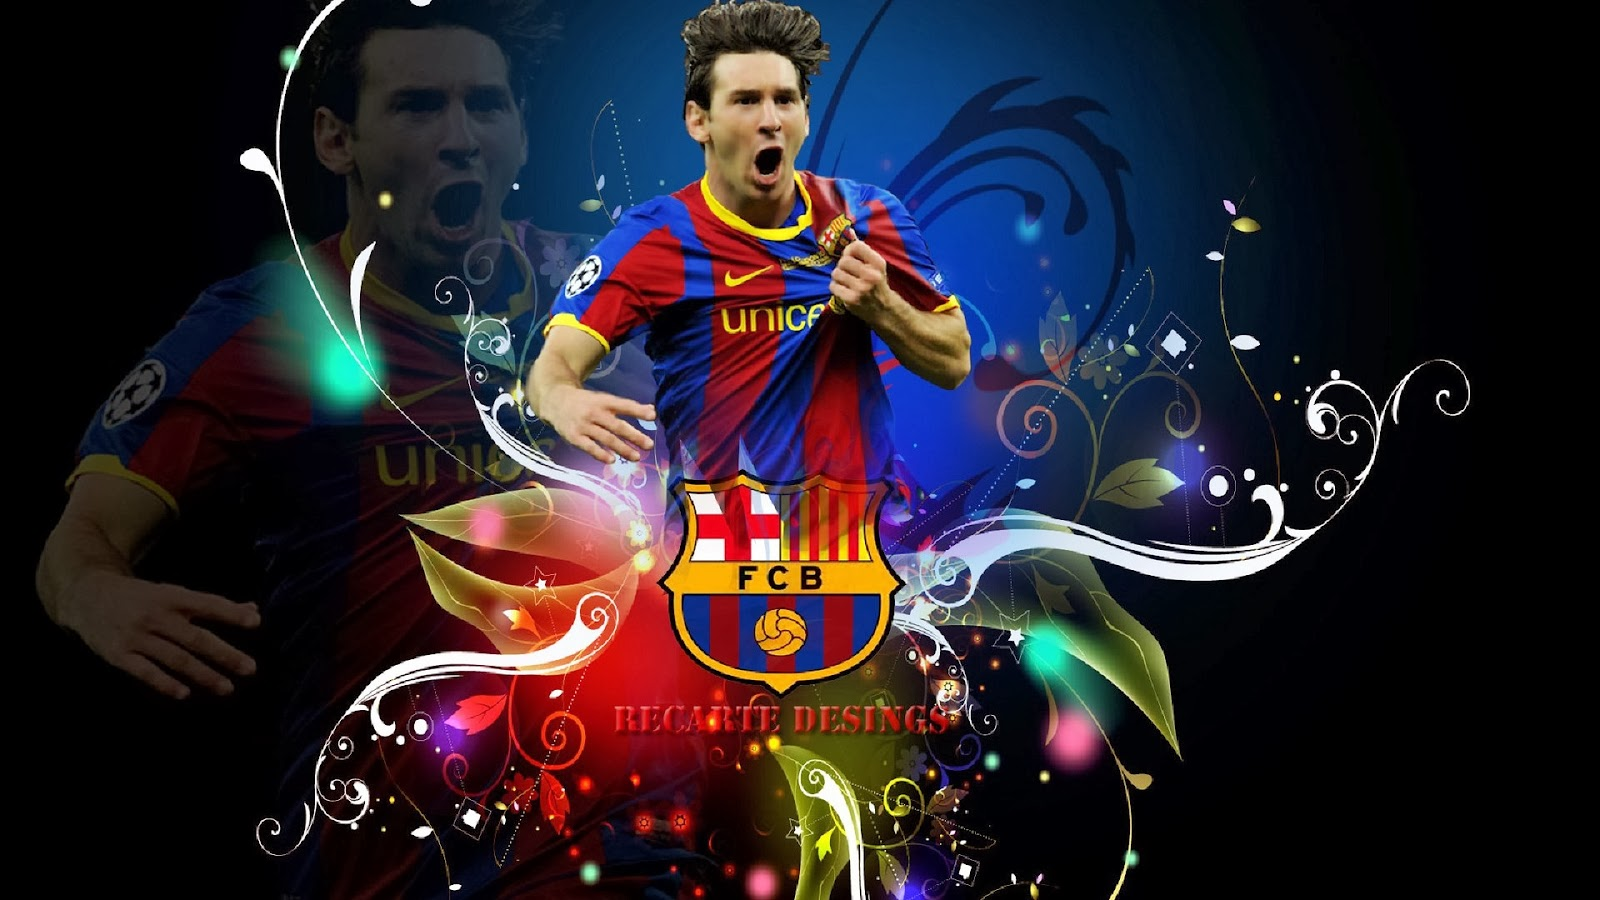 Messi Wallpaper pictures